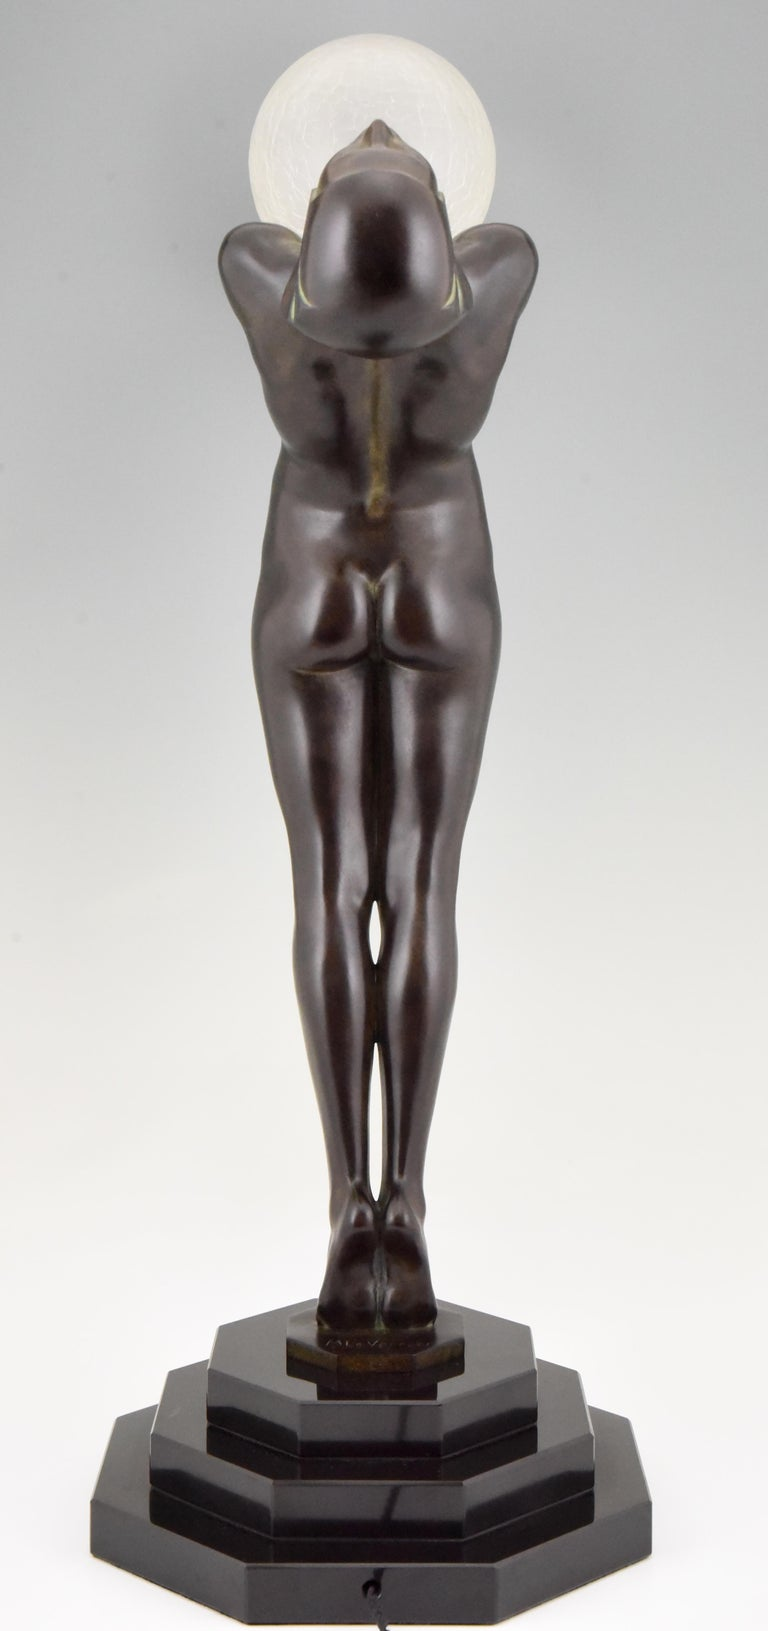 Pair of Clarté Art Deco Style Lamps Max Le Verrier Nude with Globe 84 cm 33 inch In New Condition For Sale In Antwerp, BE